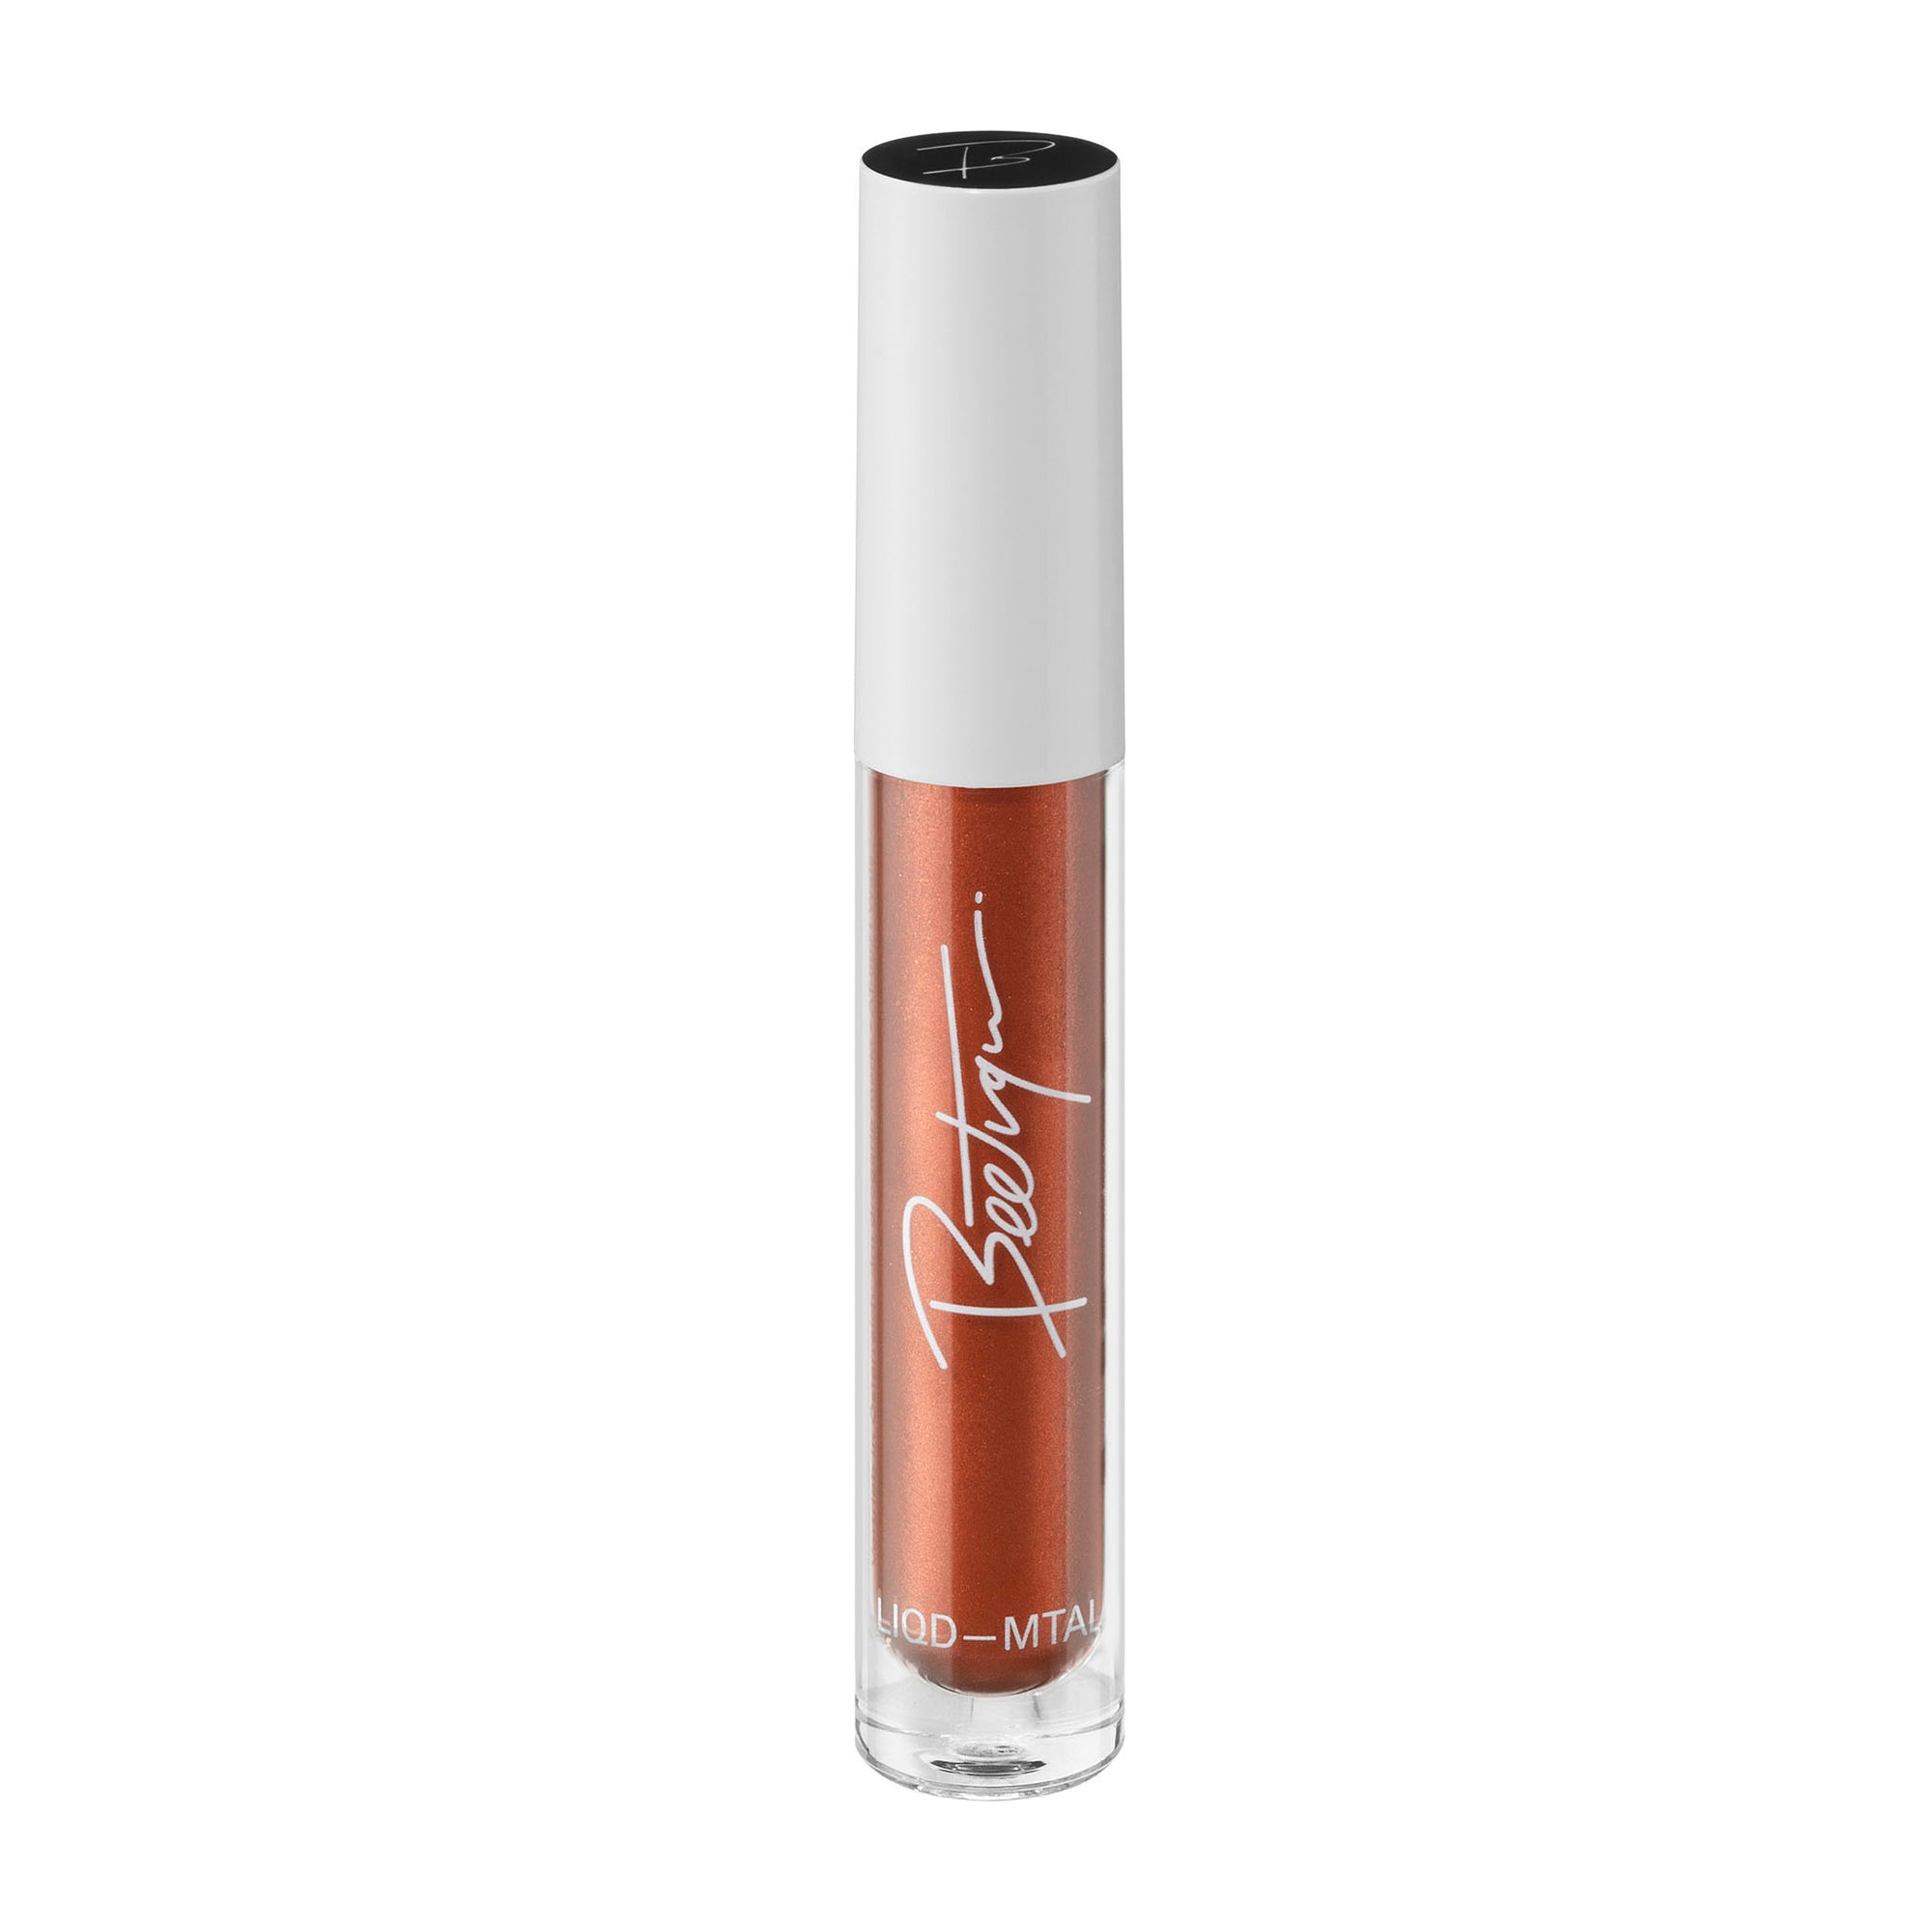 Beetique Lip-Liquid-Metal – Rich Copper 040 I 100% Vegan I Dermatologisch getestet I Kosmetik- und Make Up Brand I Jetzt online bestellen!